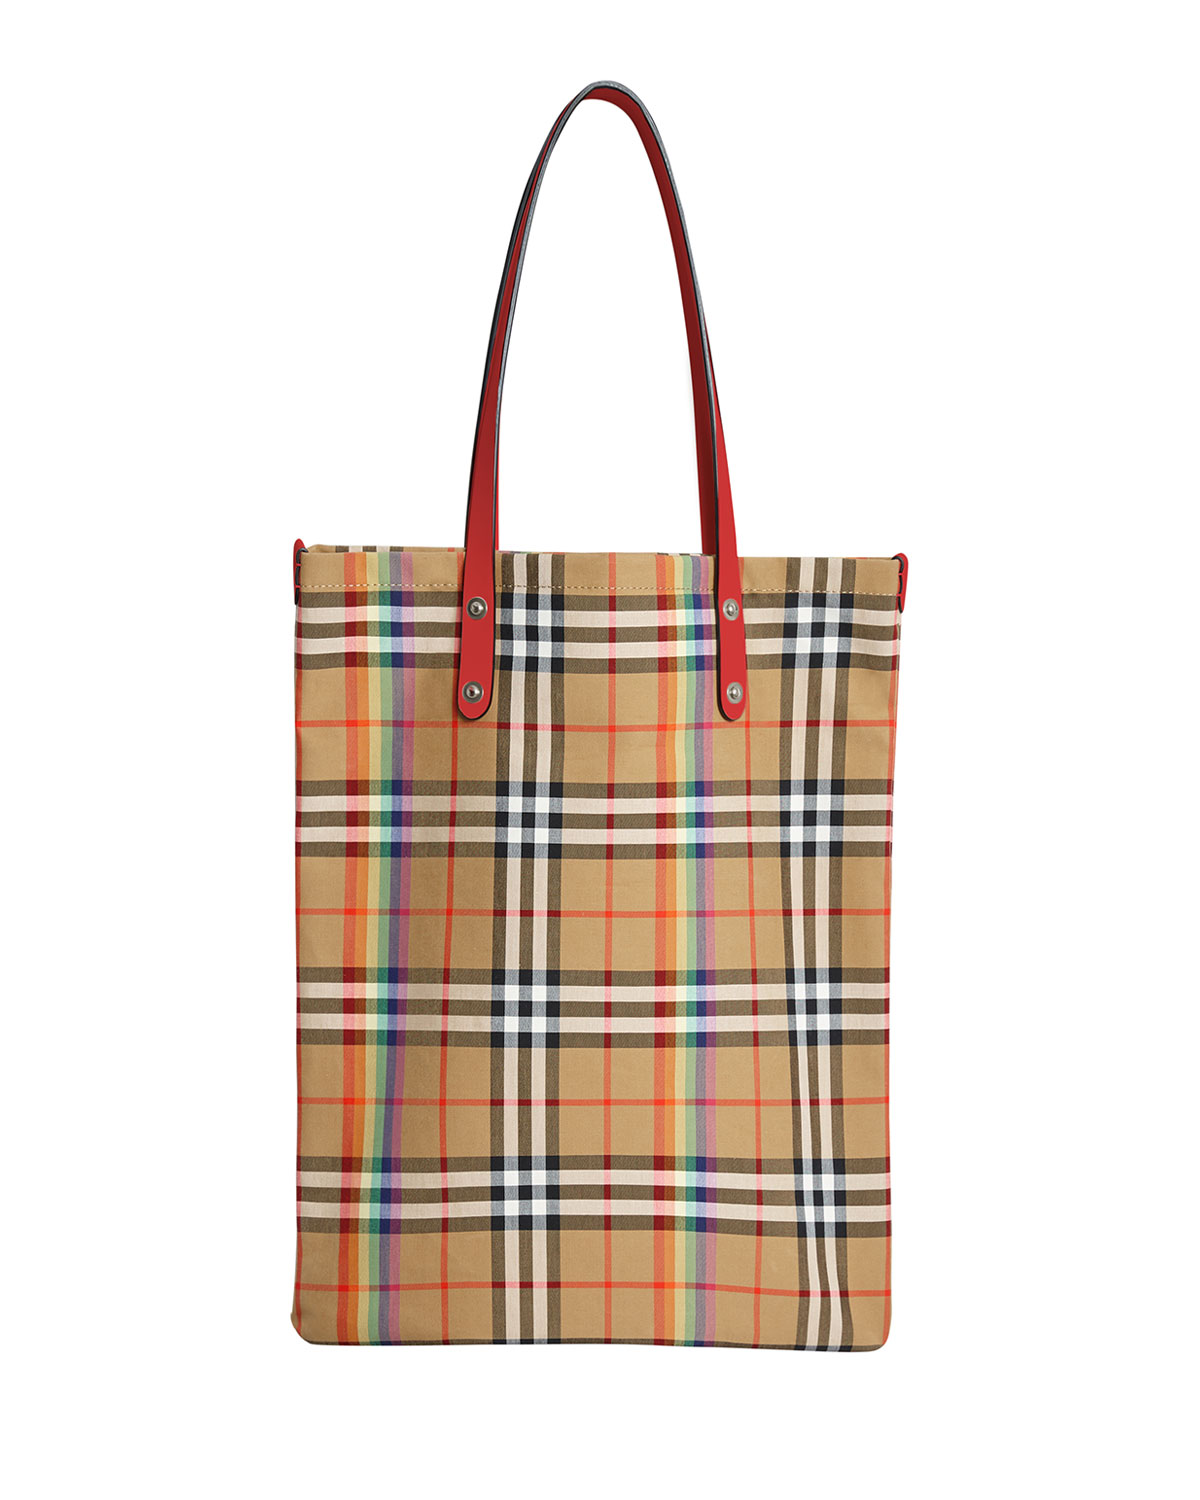 3b45c3c35772 Burberry Handbags and Totes at MuchosBesitos